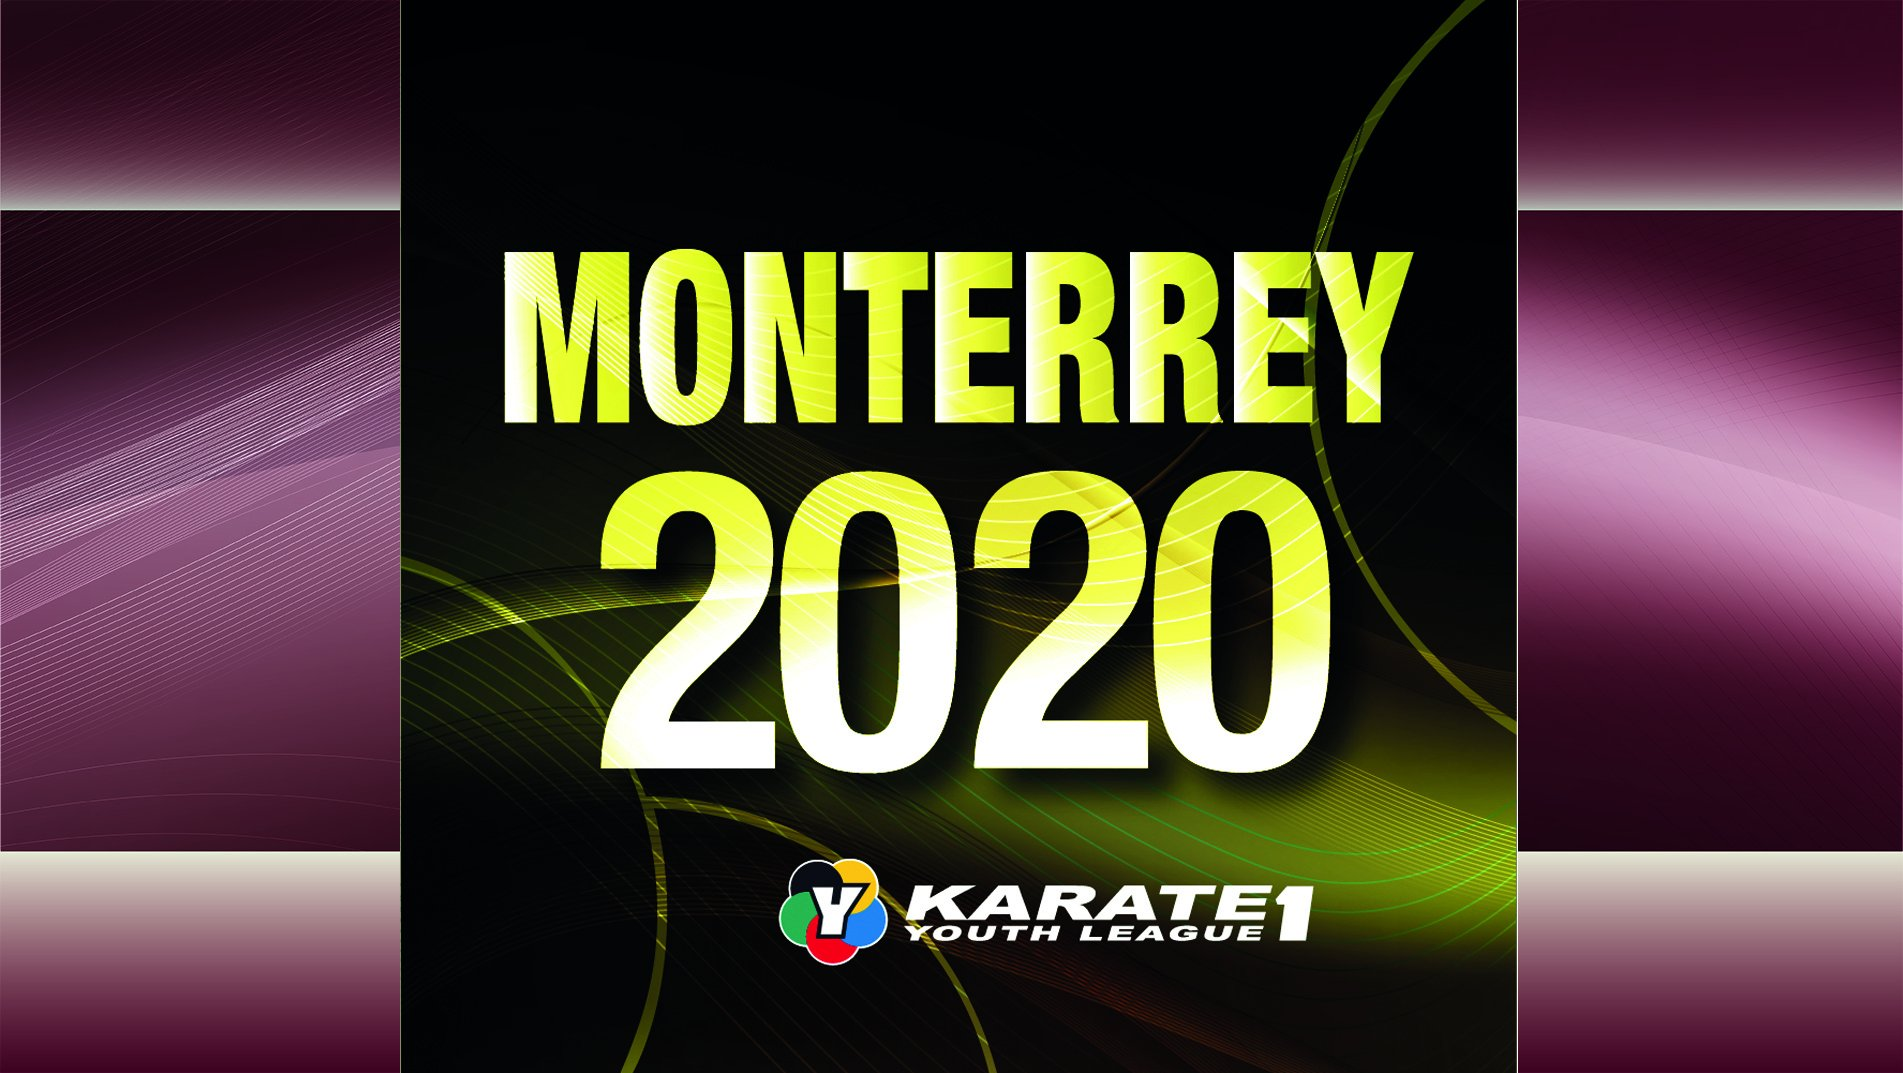 Karate 1- Youth League Monterrey and FISU World University Karate Championships cancelled